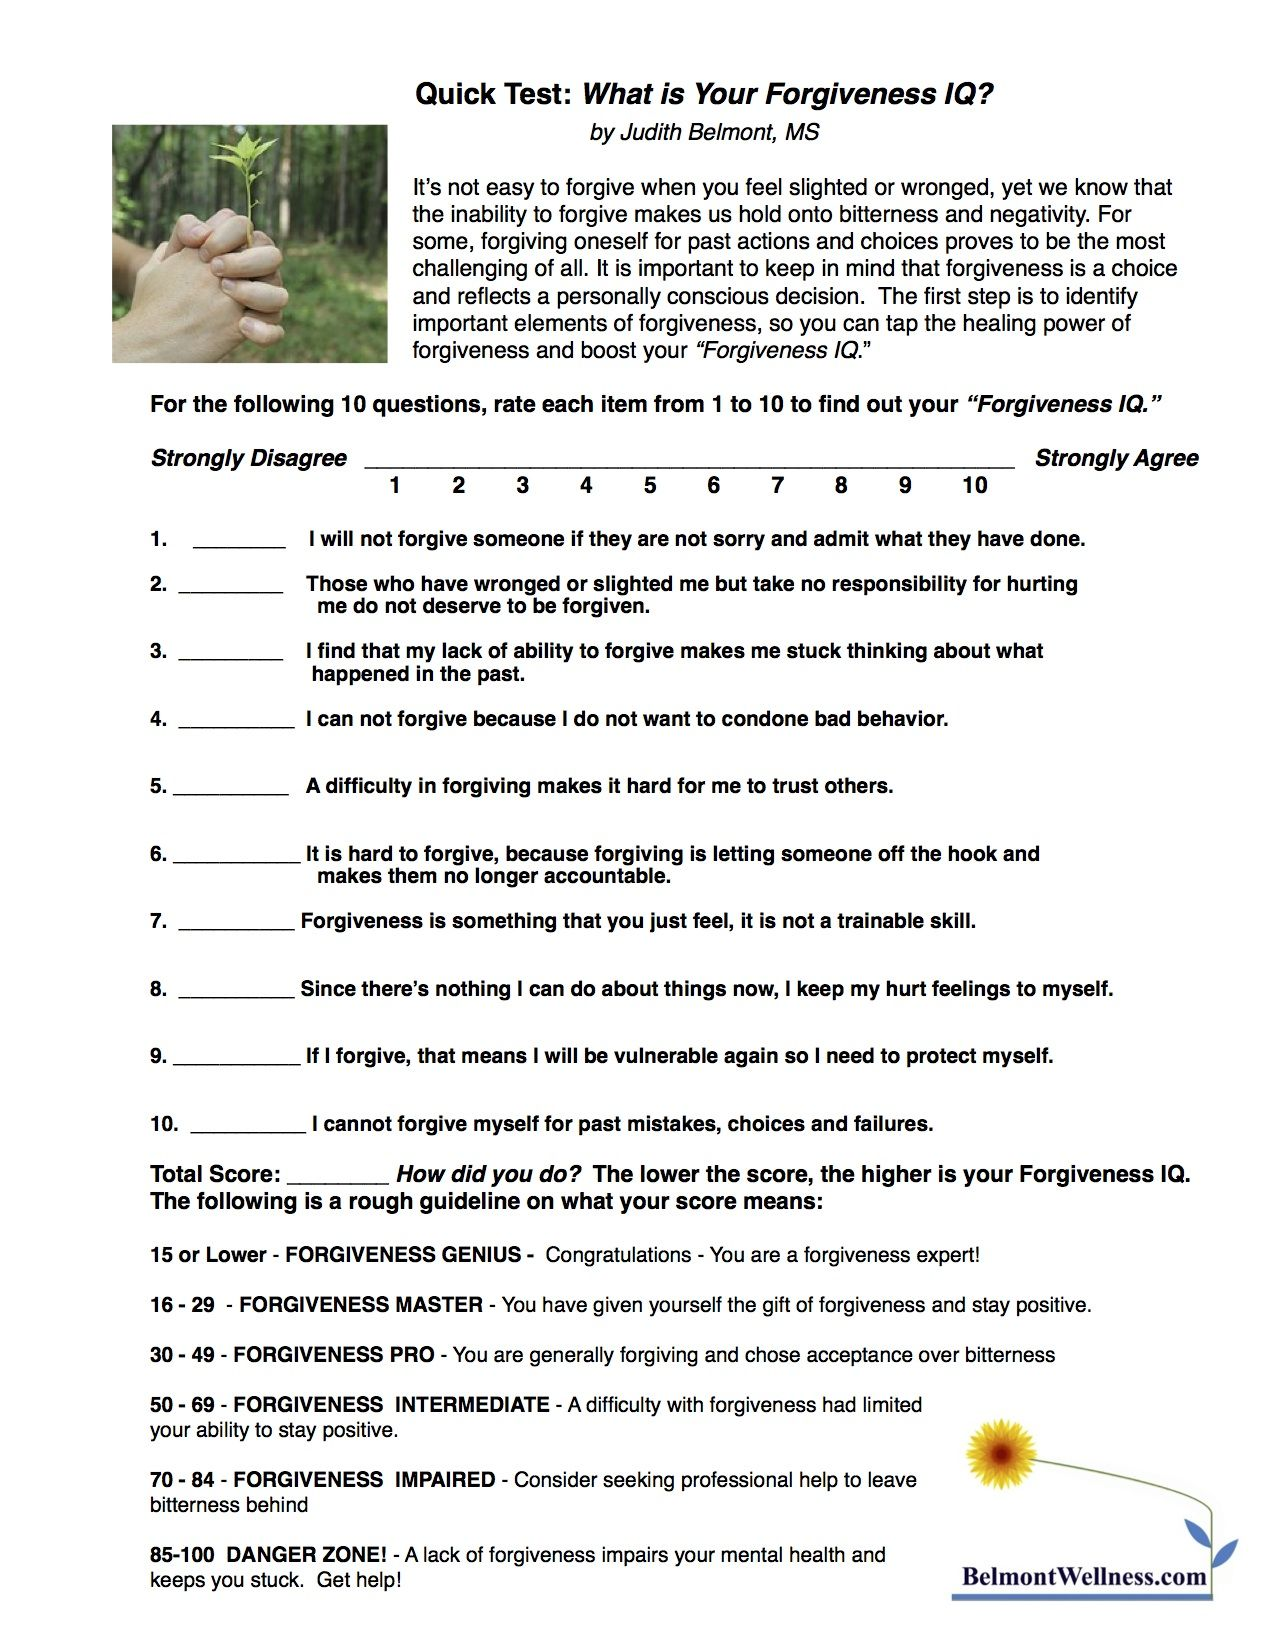 Mental Health Group Worksheets : Forgiveness self test take this quick quiz to find out